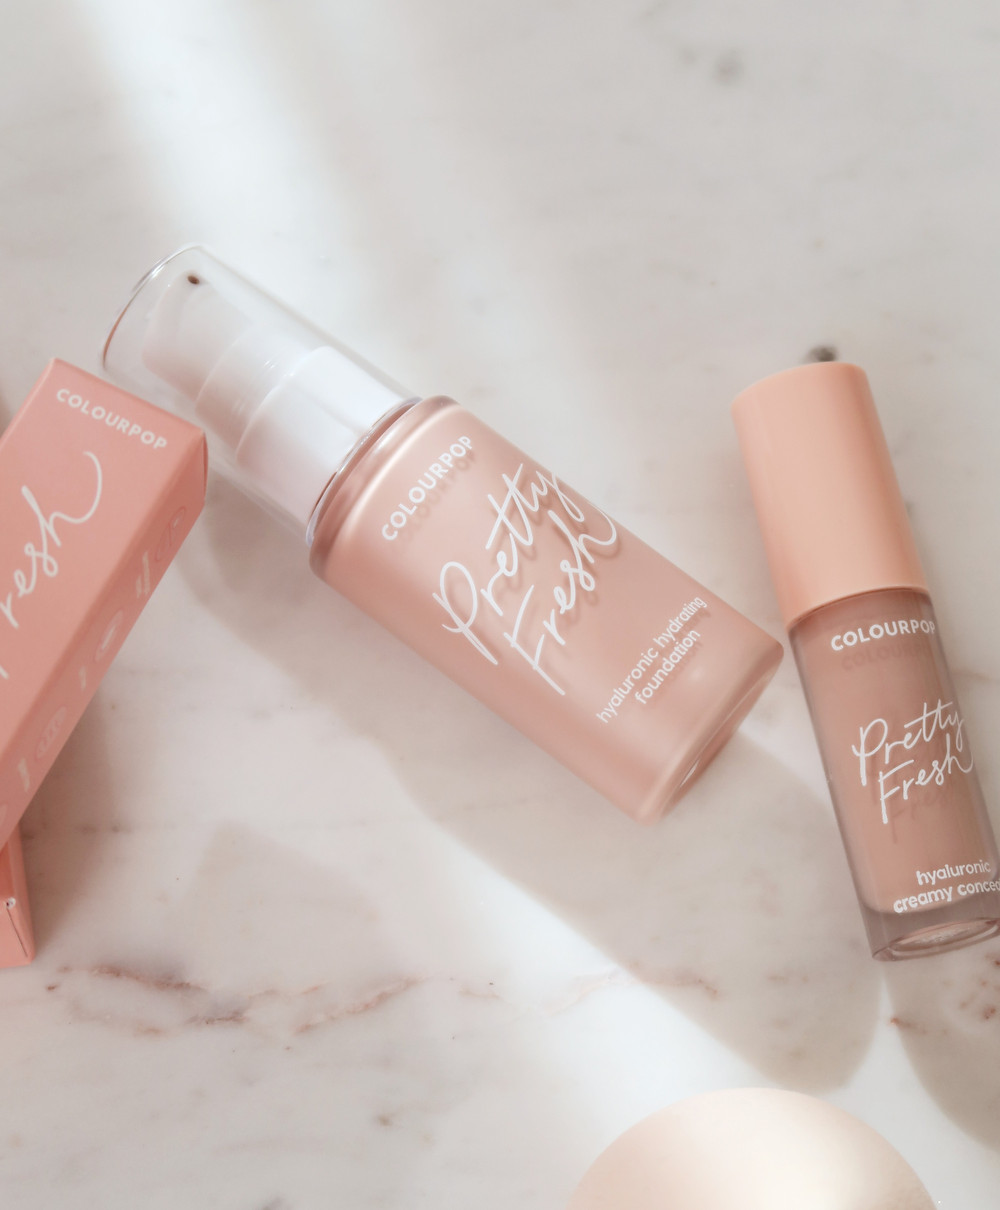 Colourpop Pretty Fresh Hydrating Foundation and Concealer Review